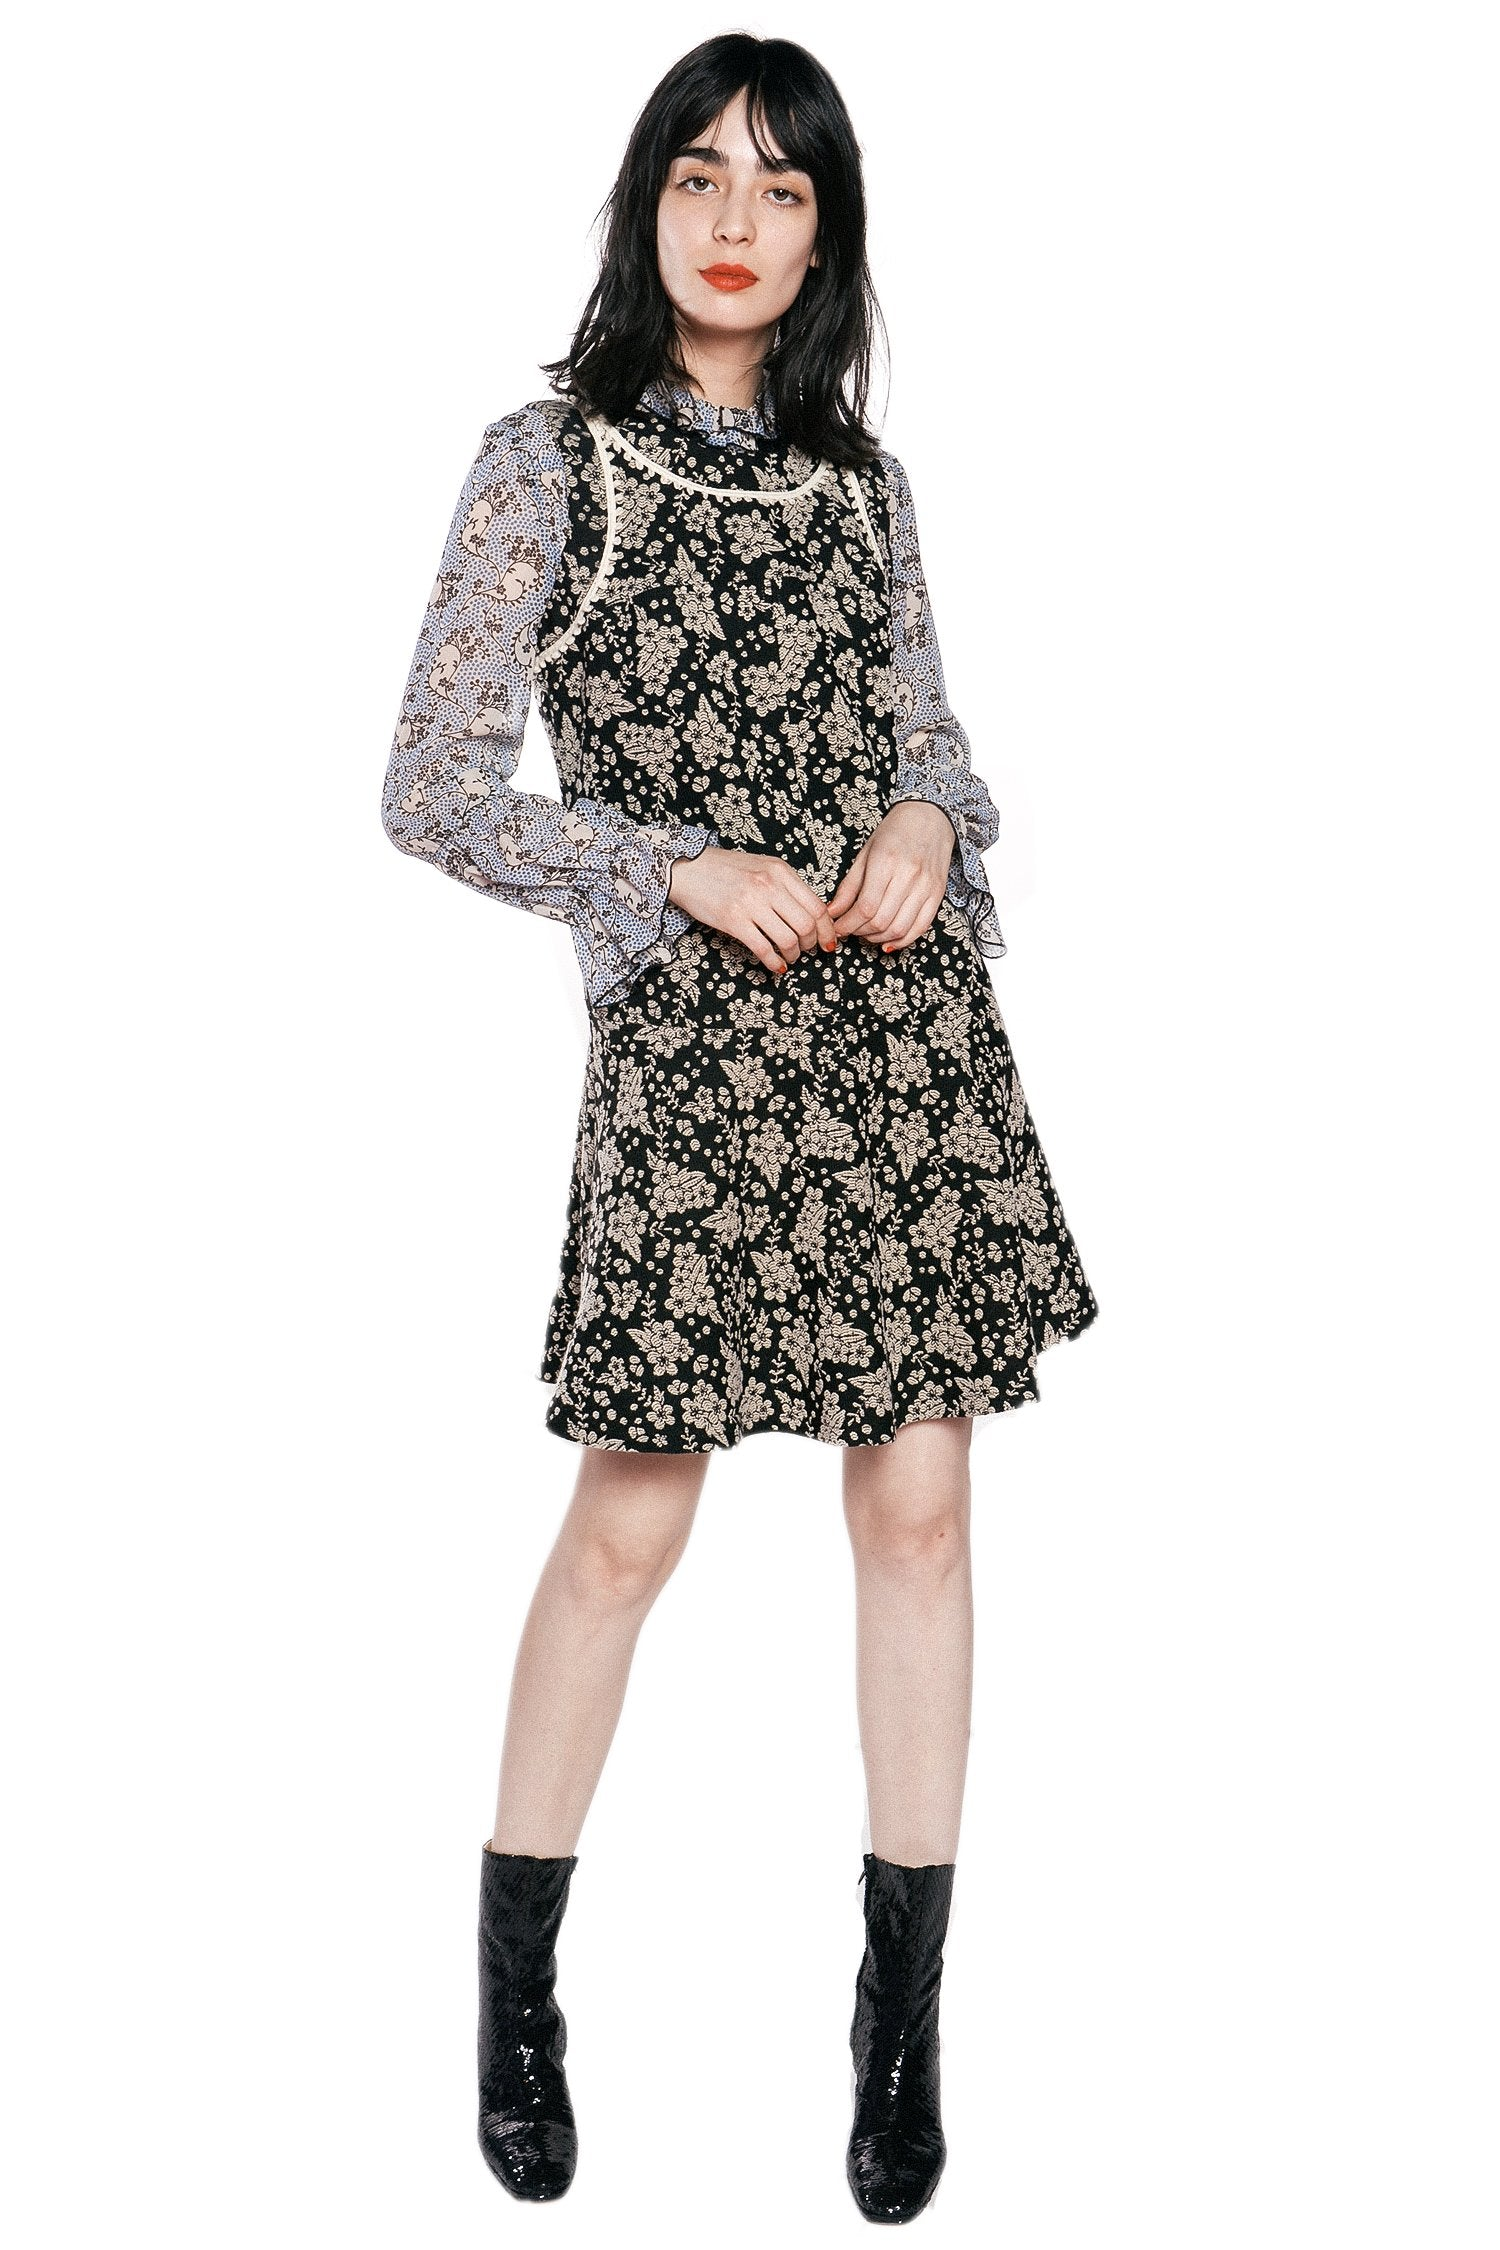 Flourishing Florets Jacquard Dress - Anna Sui